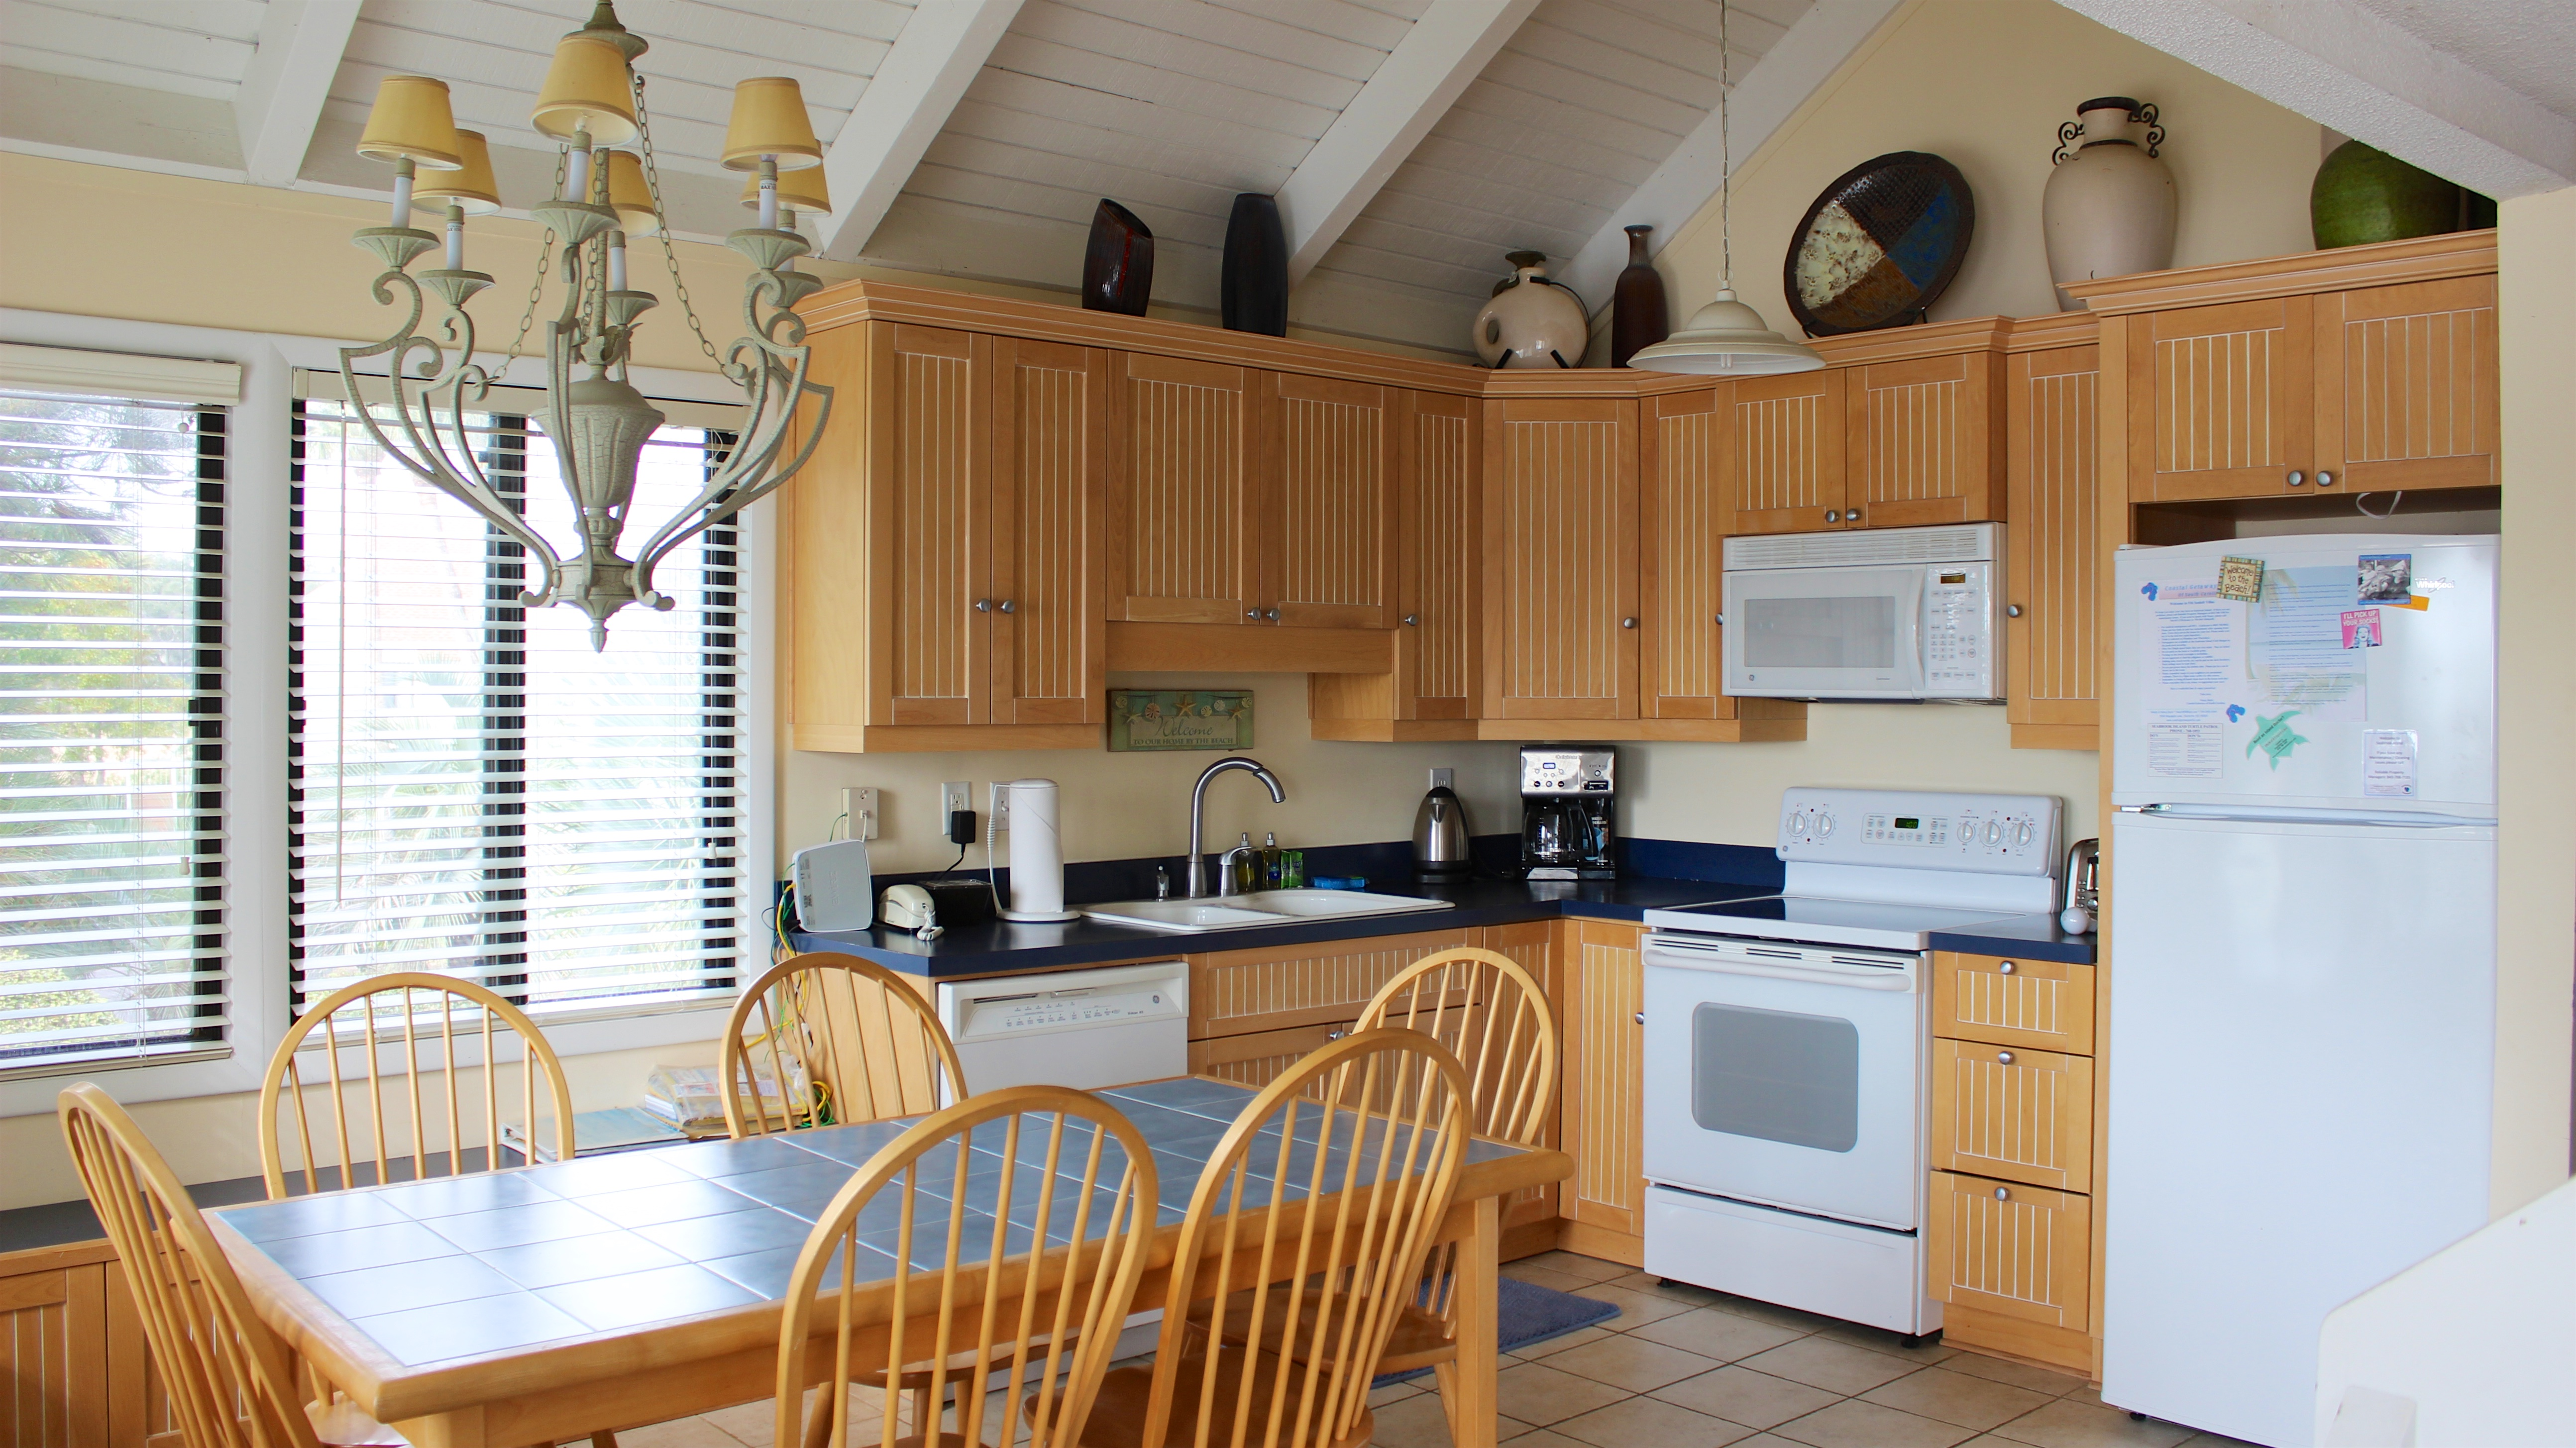 The kitchen has wainscot cabinets, new appliances, and is very open.